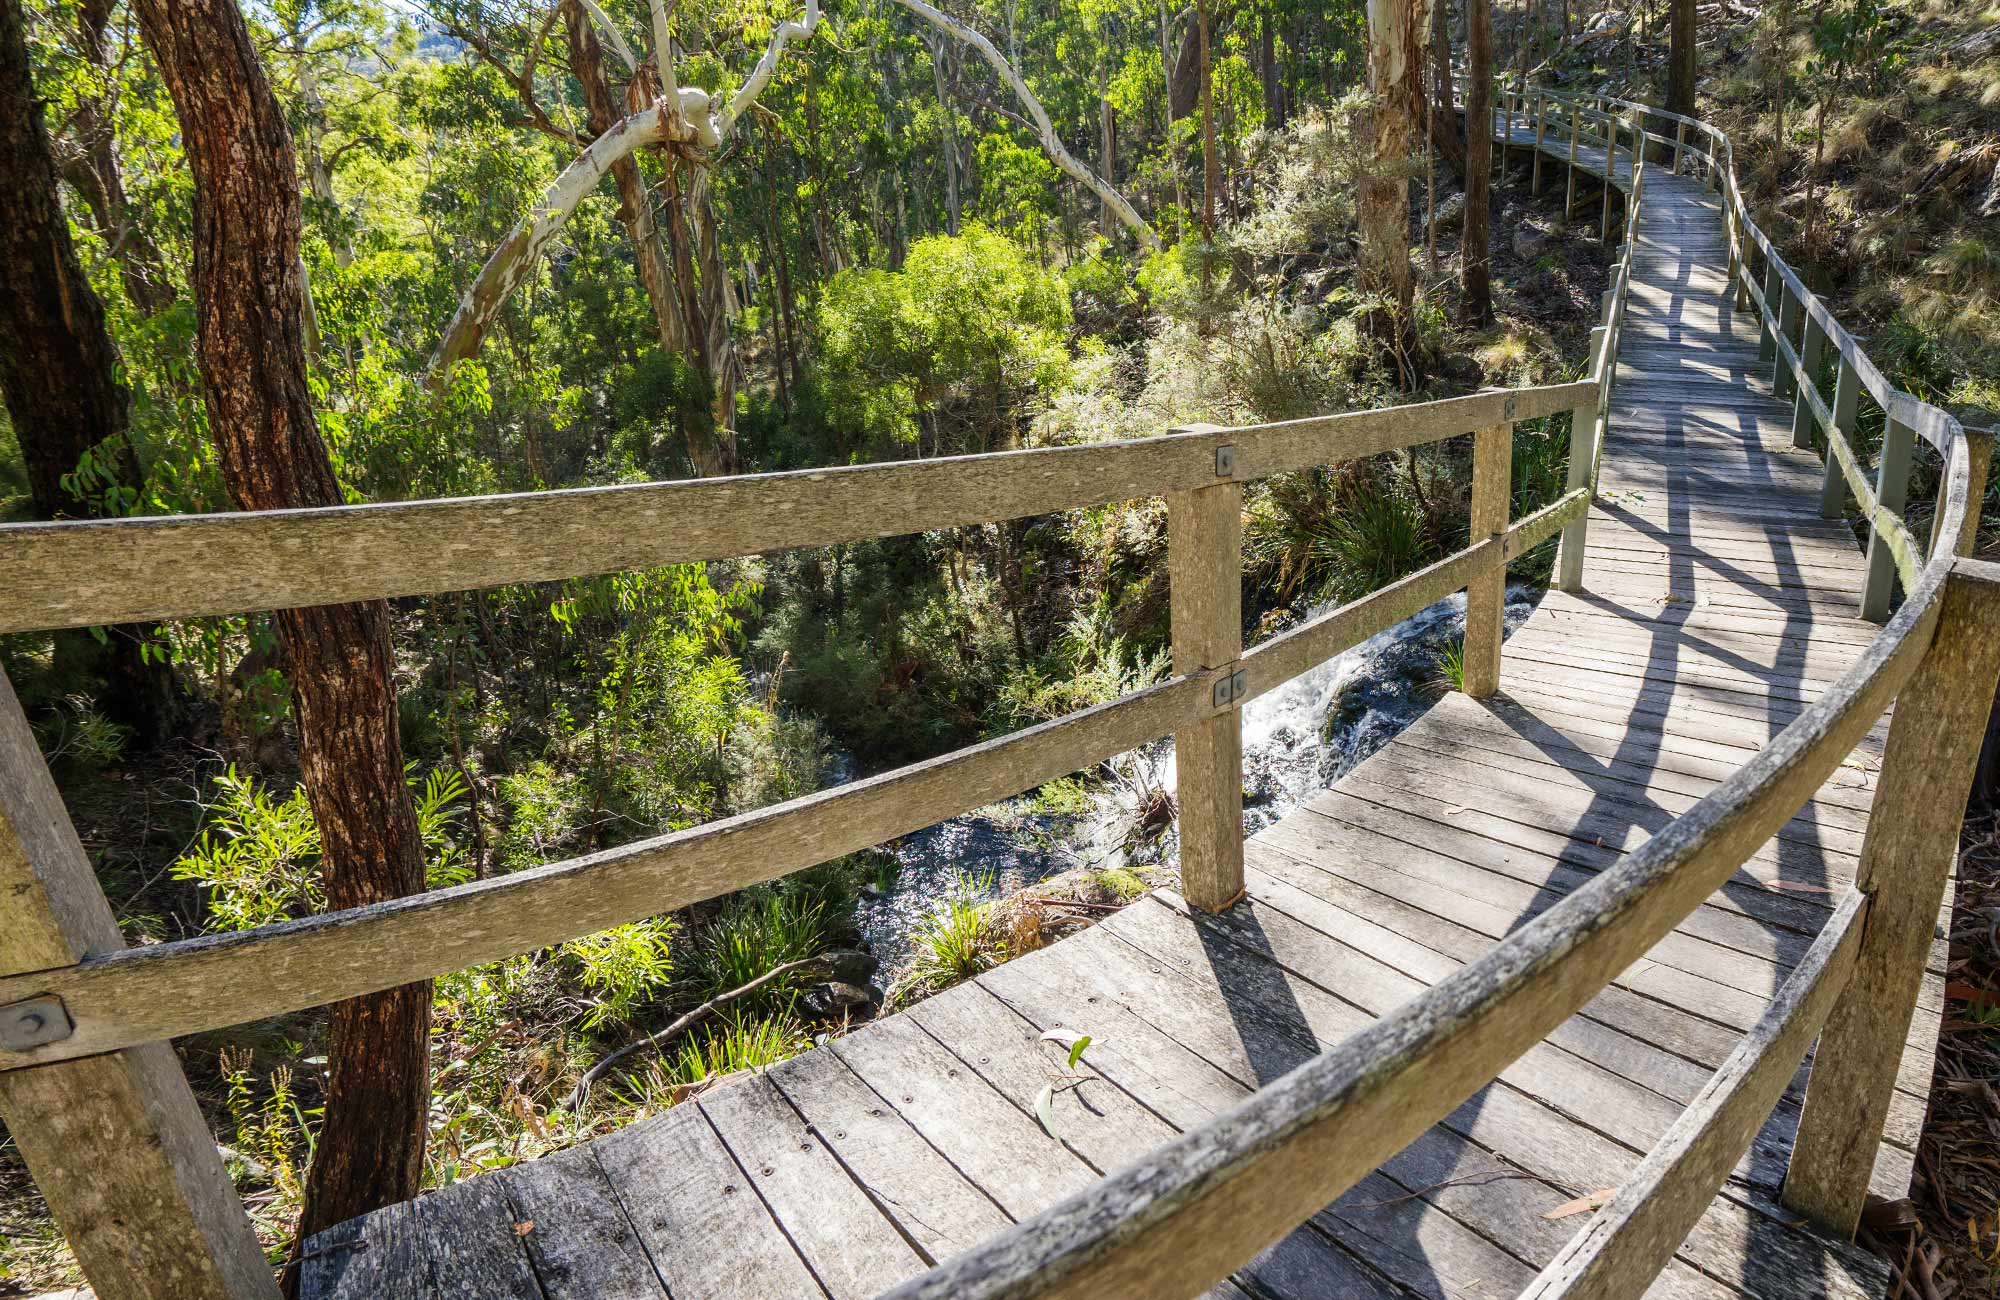 Raised timber boardwalk on Dawsons Spring nature trail, Mount Kaputar National Park. Photo: Simone Cottrell/OEH